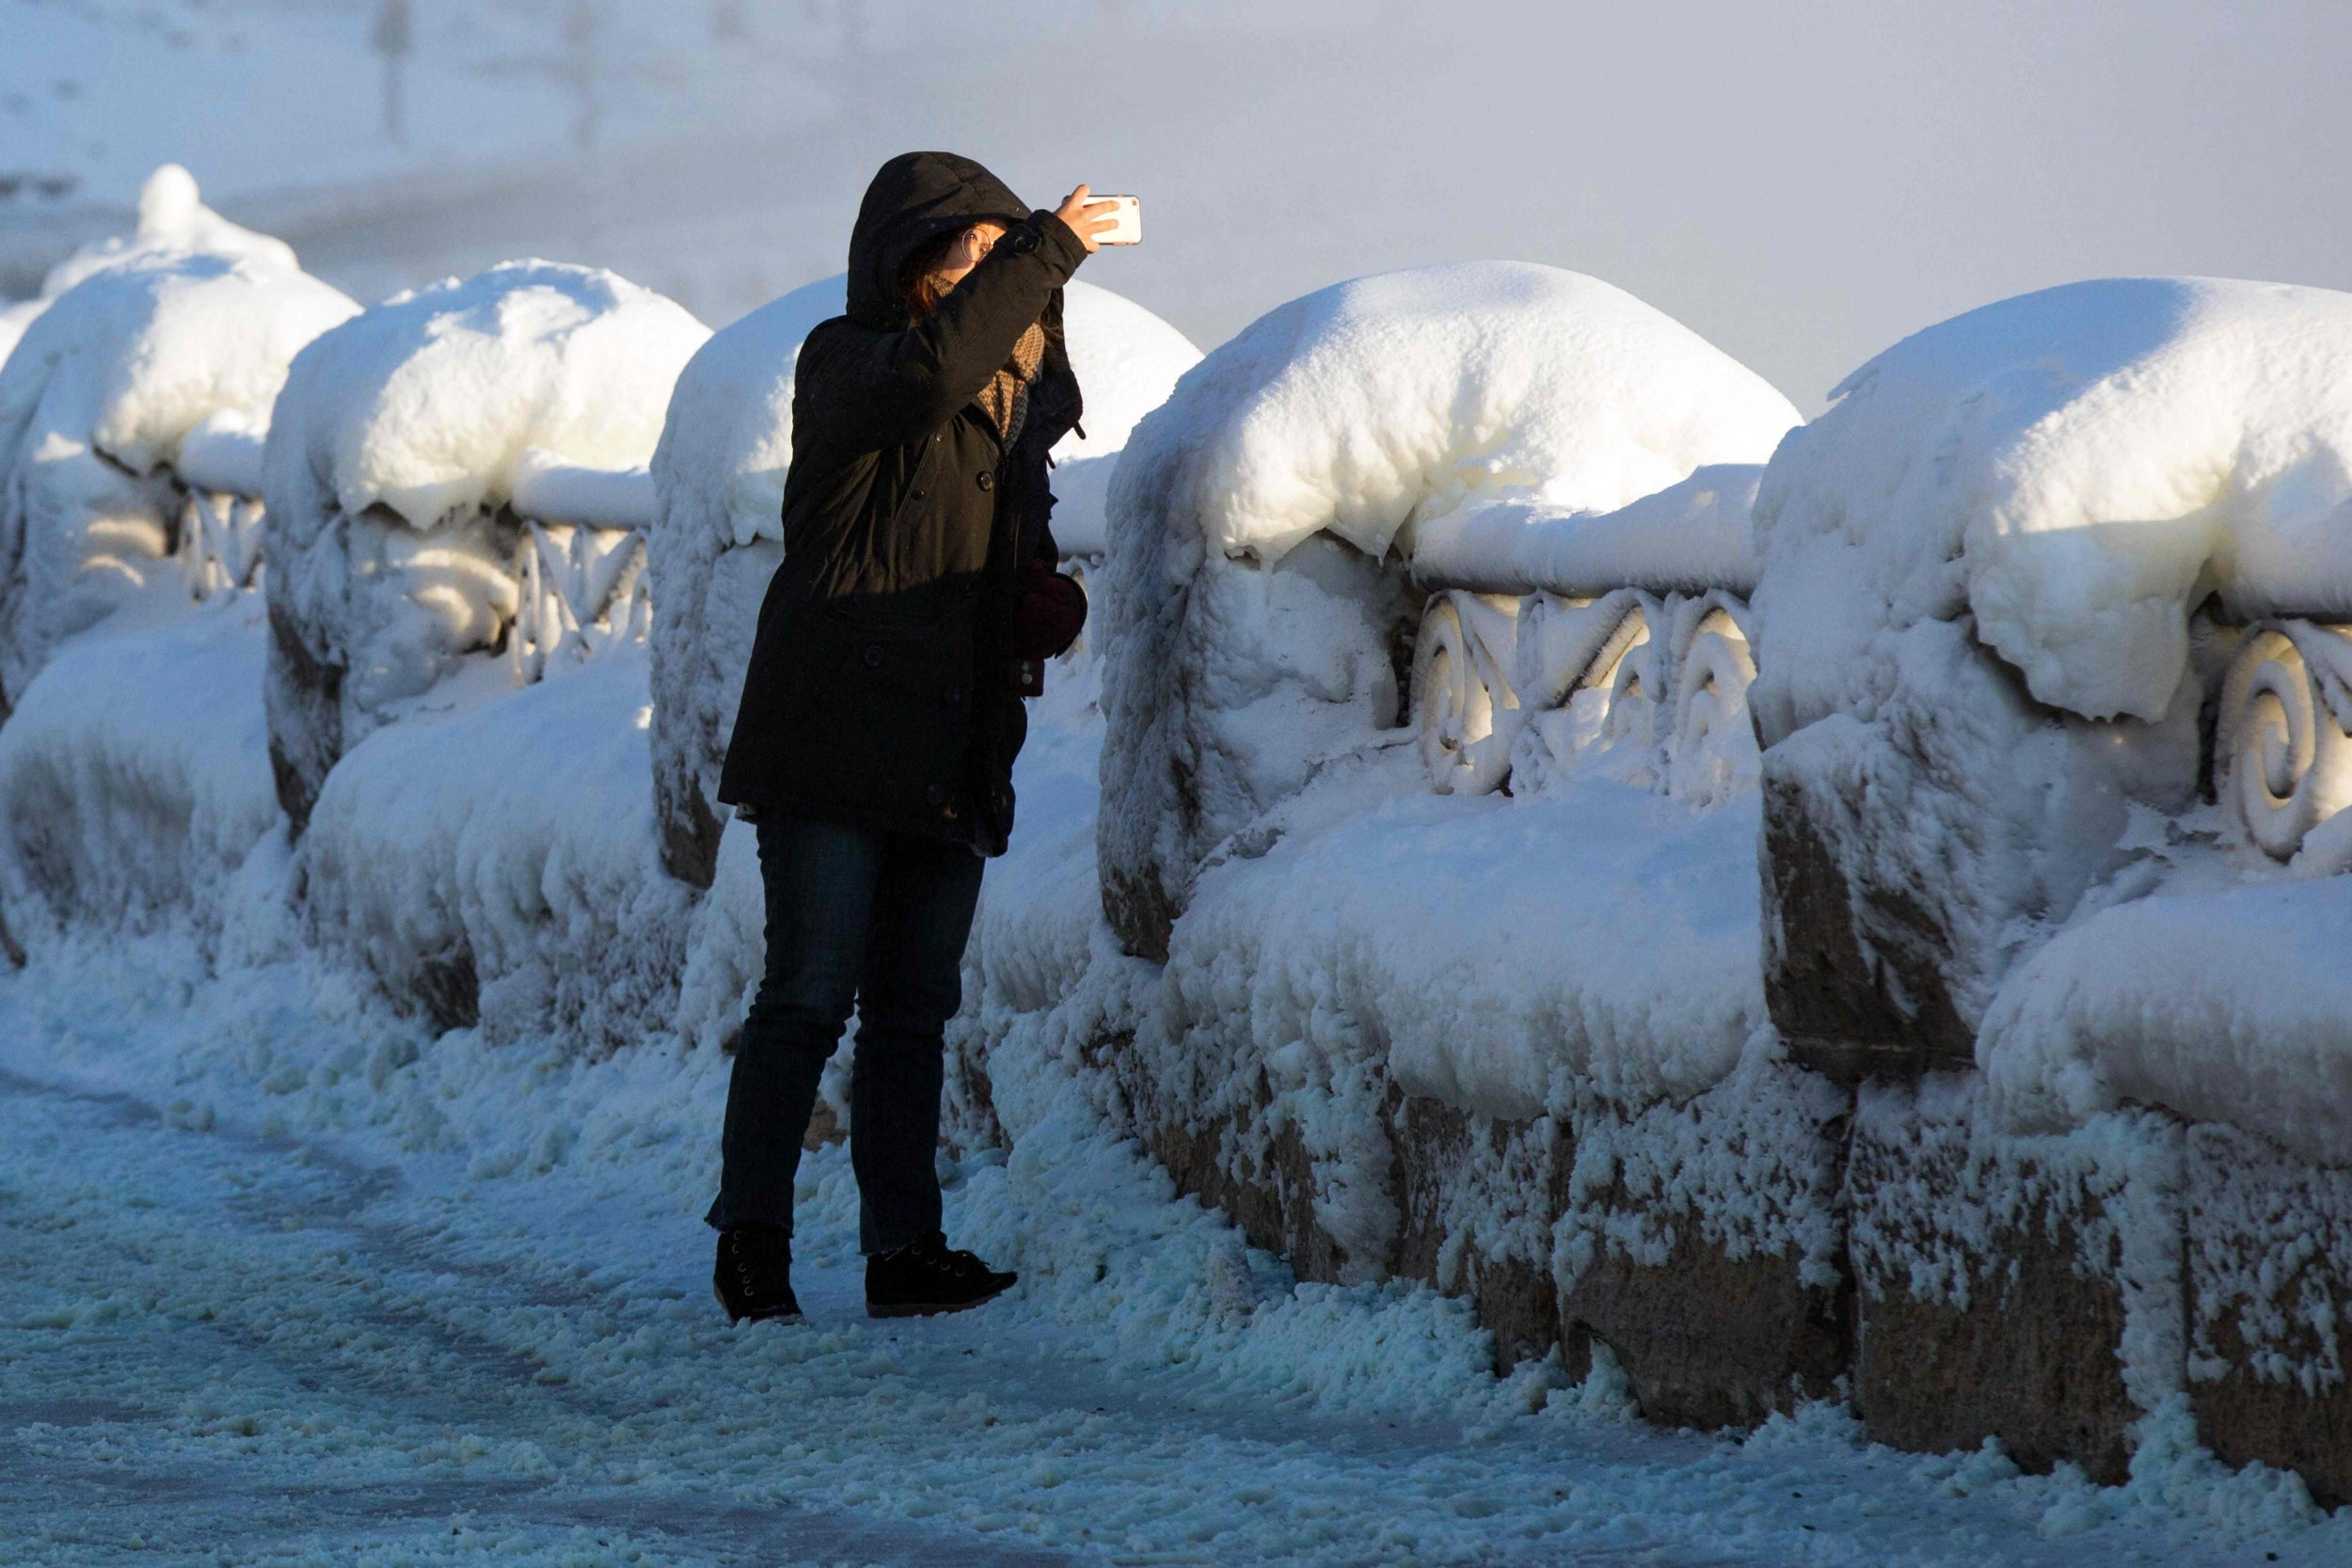 Niagara Falls freezes over with mesmerising results | The